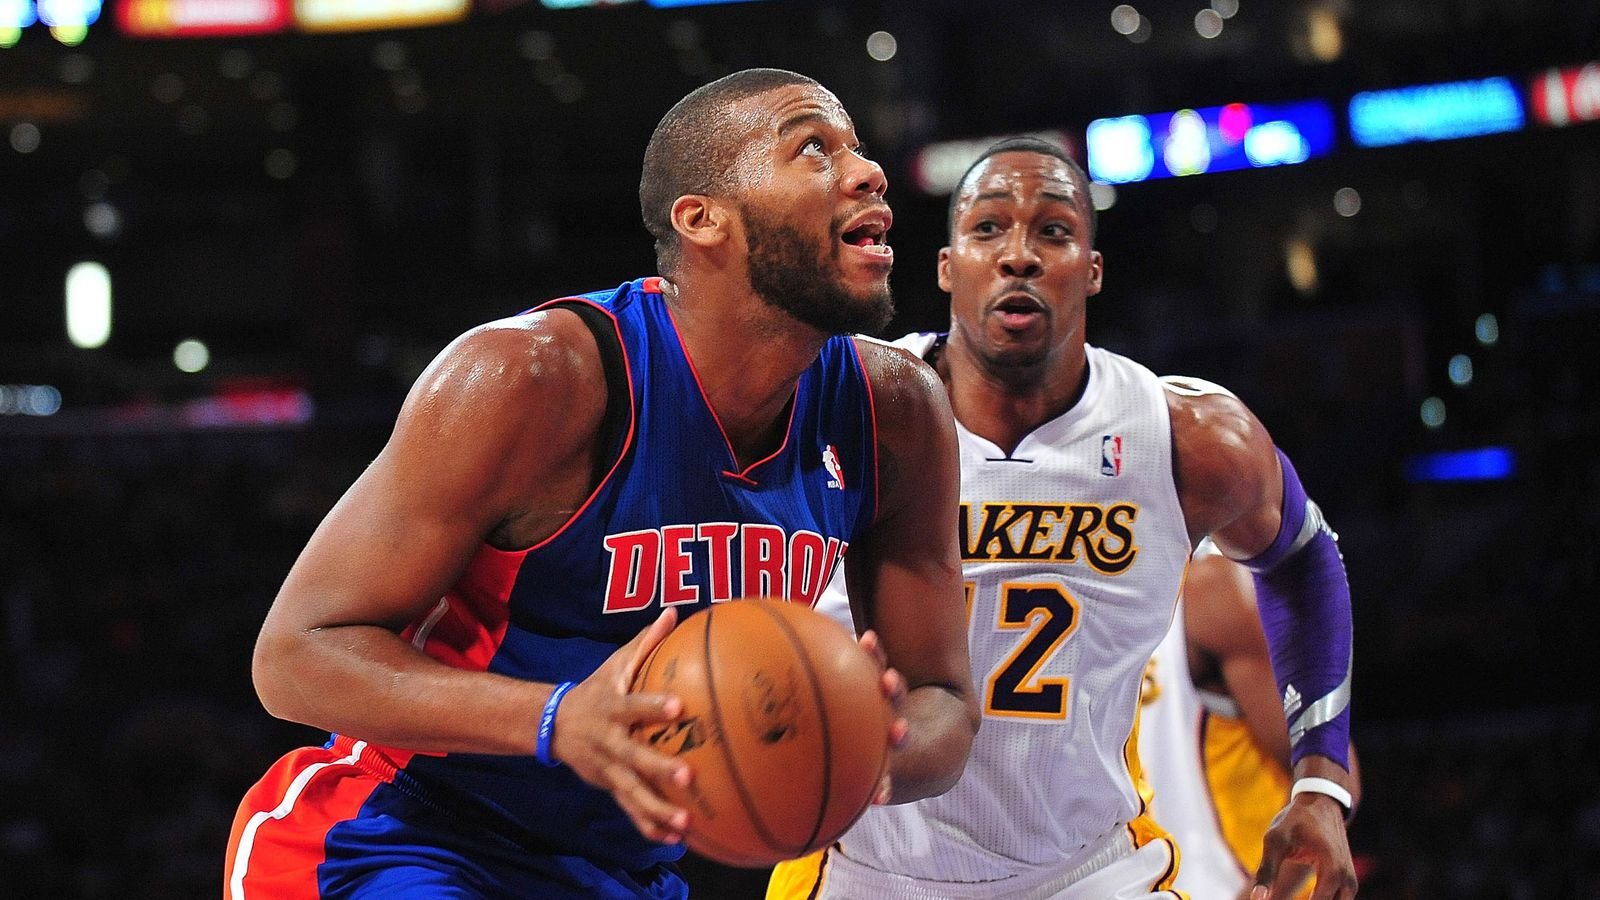 pistons vs lakers